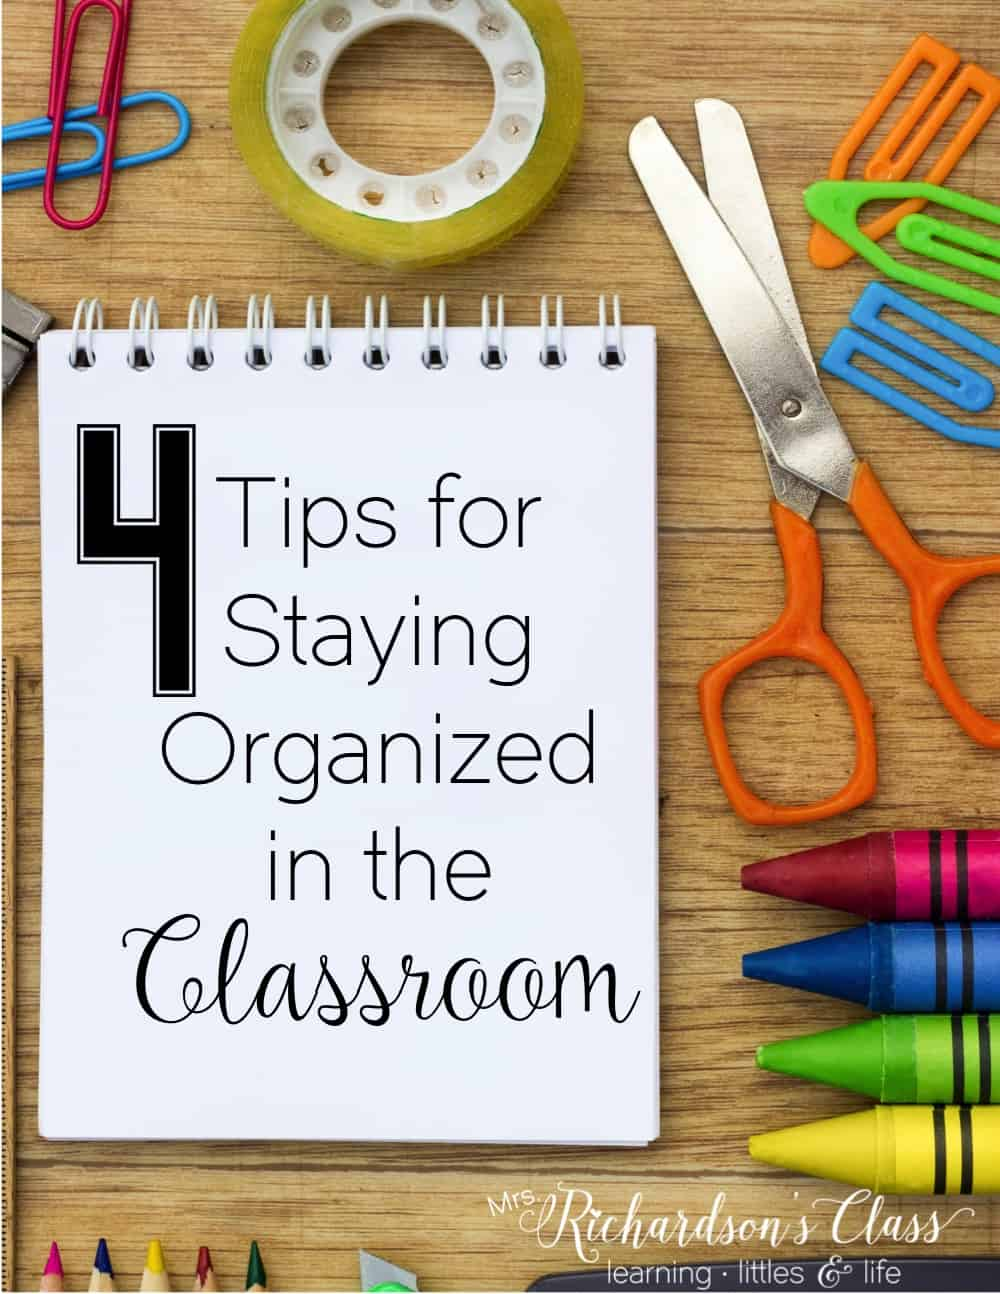 Do you struggle to stay organized in the classroom? These 4 tips are sure to help you keep your classroom organized! Number 1 is the key! #classroomorganization #stayorganized #classroomstorage #clutterfreeclassroom